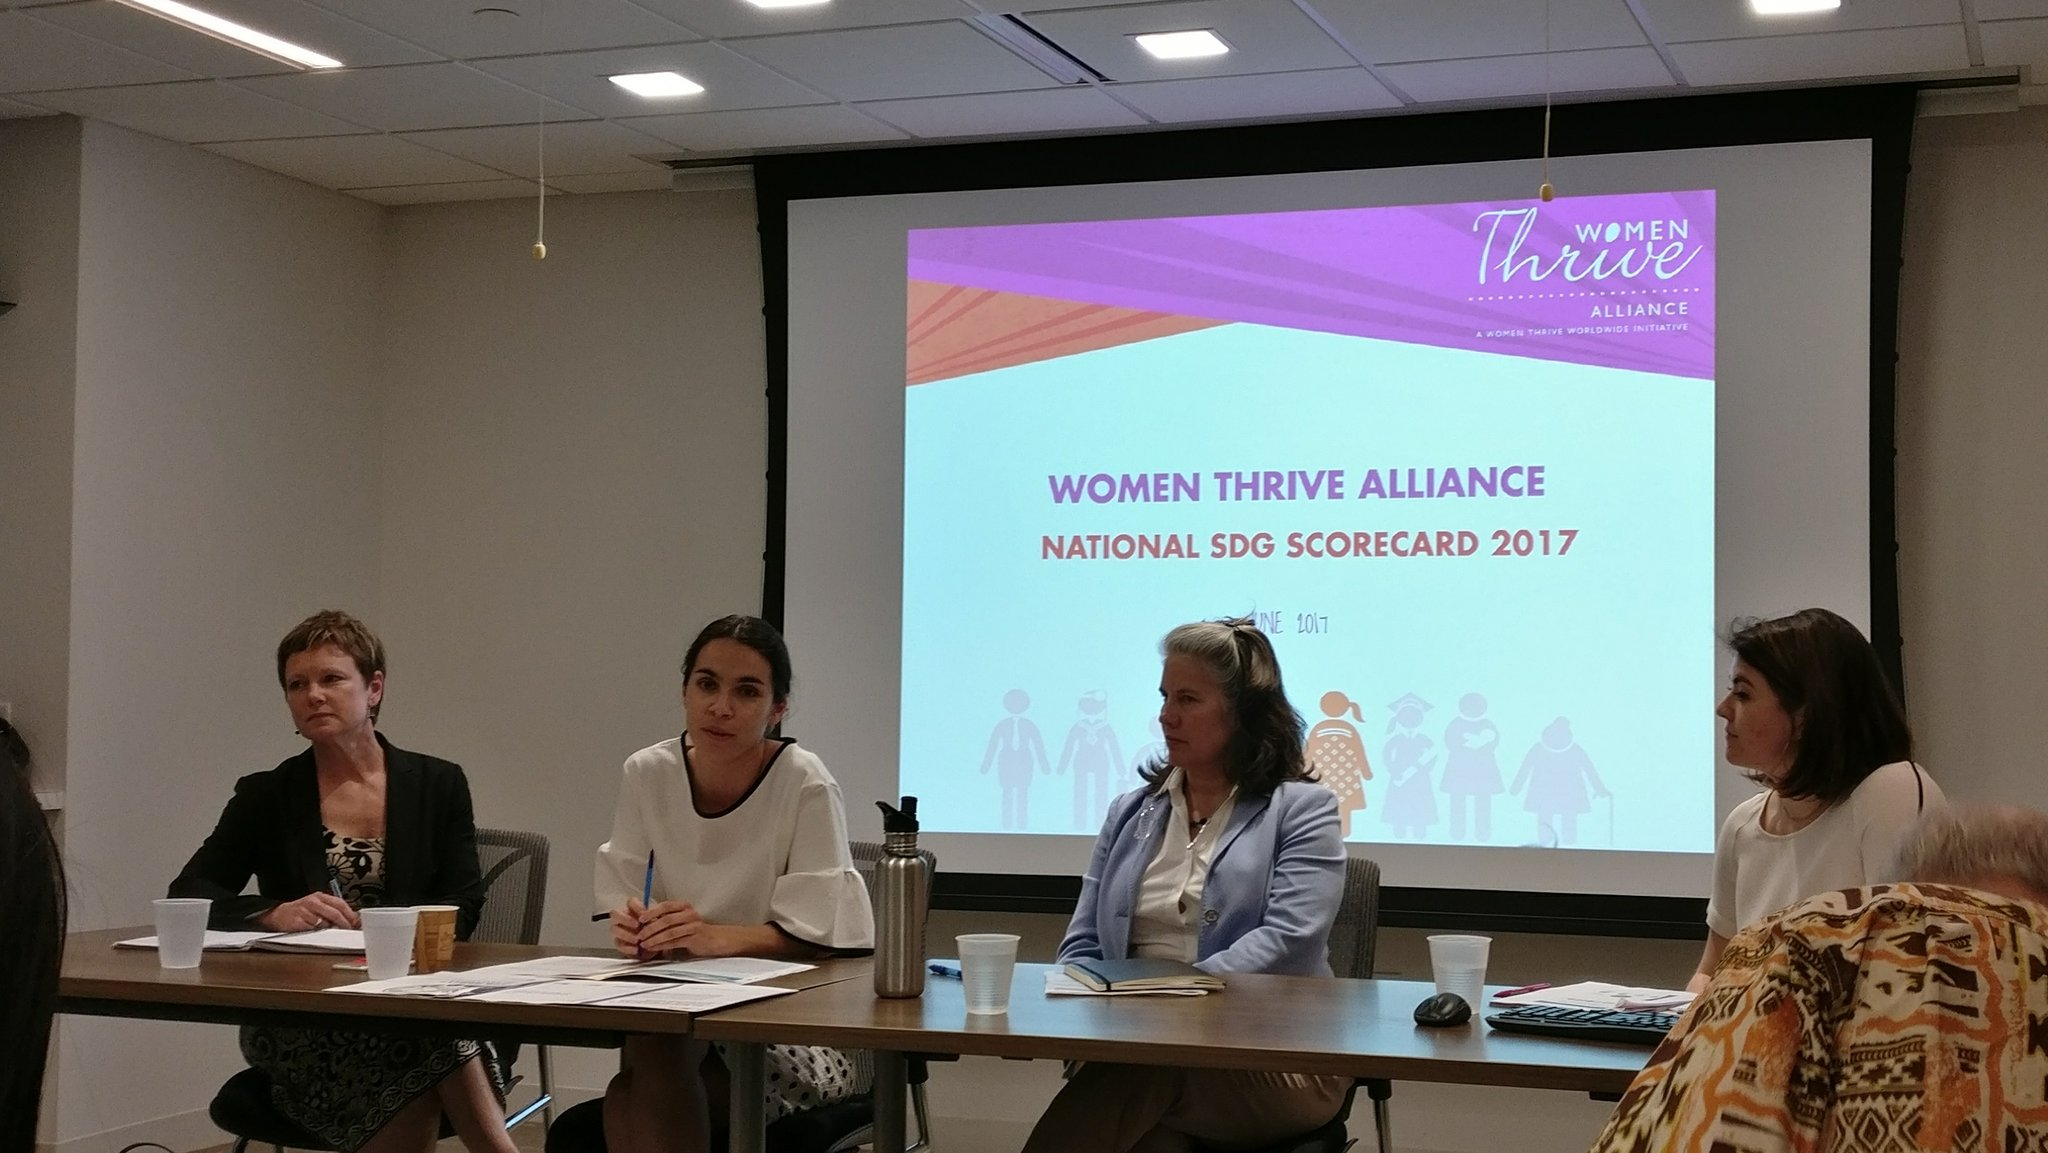 Wonderful to be @WomenThrive & @InterActionOrg event on #WROs & #SDG5 https://t.co/iSrU4HnYt7